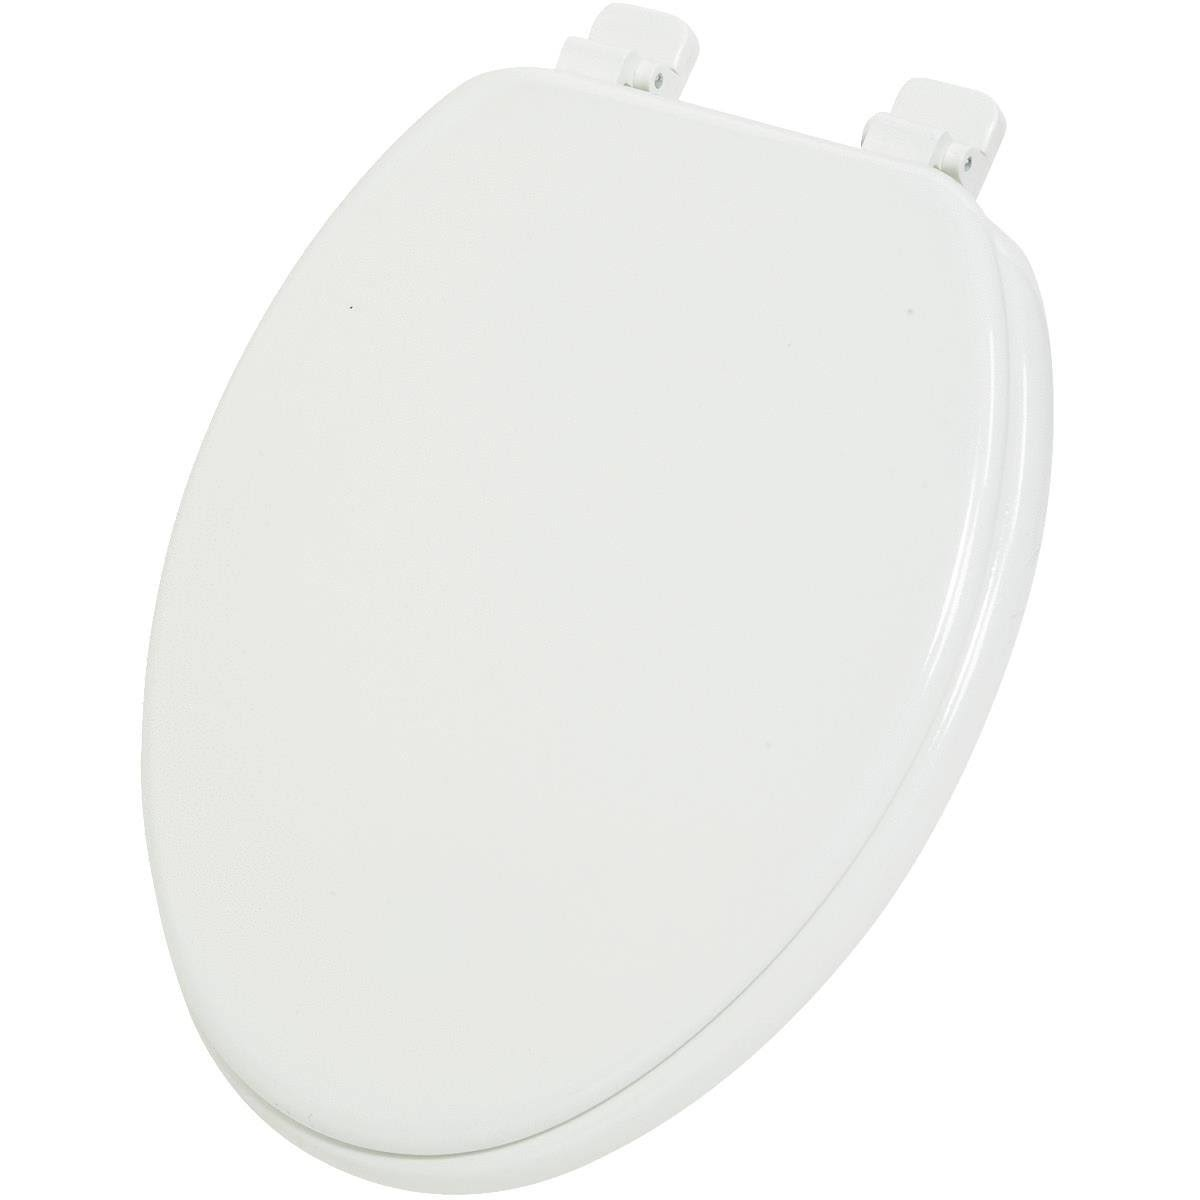 Plumbing Technologies 1F1R6-00BN Premium Molded Round Front Wood Toilet Seat - With Brushed Nickel Metal Hinges, White